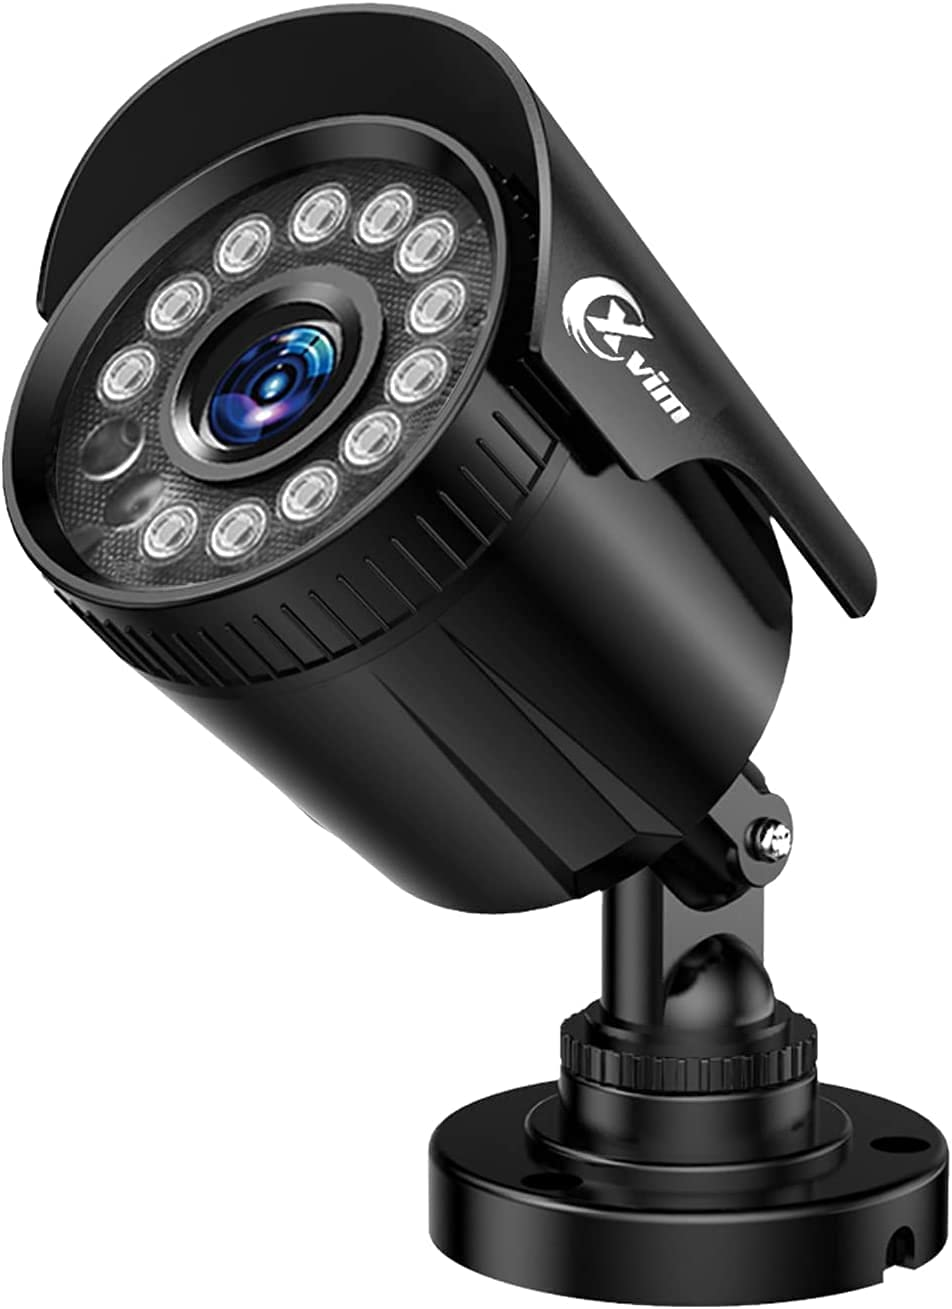 XVIM 1080P Security Bullet Camera for Home and Outdoor CCTV System with Night Vision Black,Motion Alert,Smart Lighting